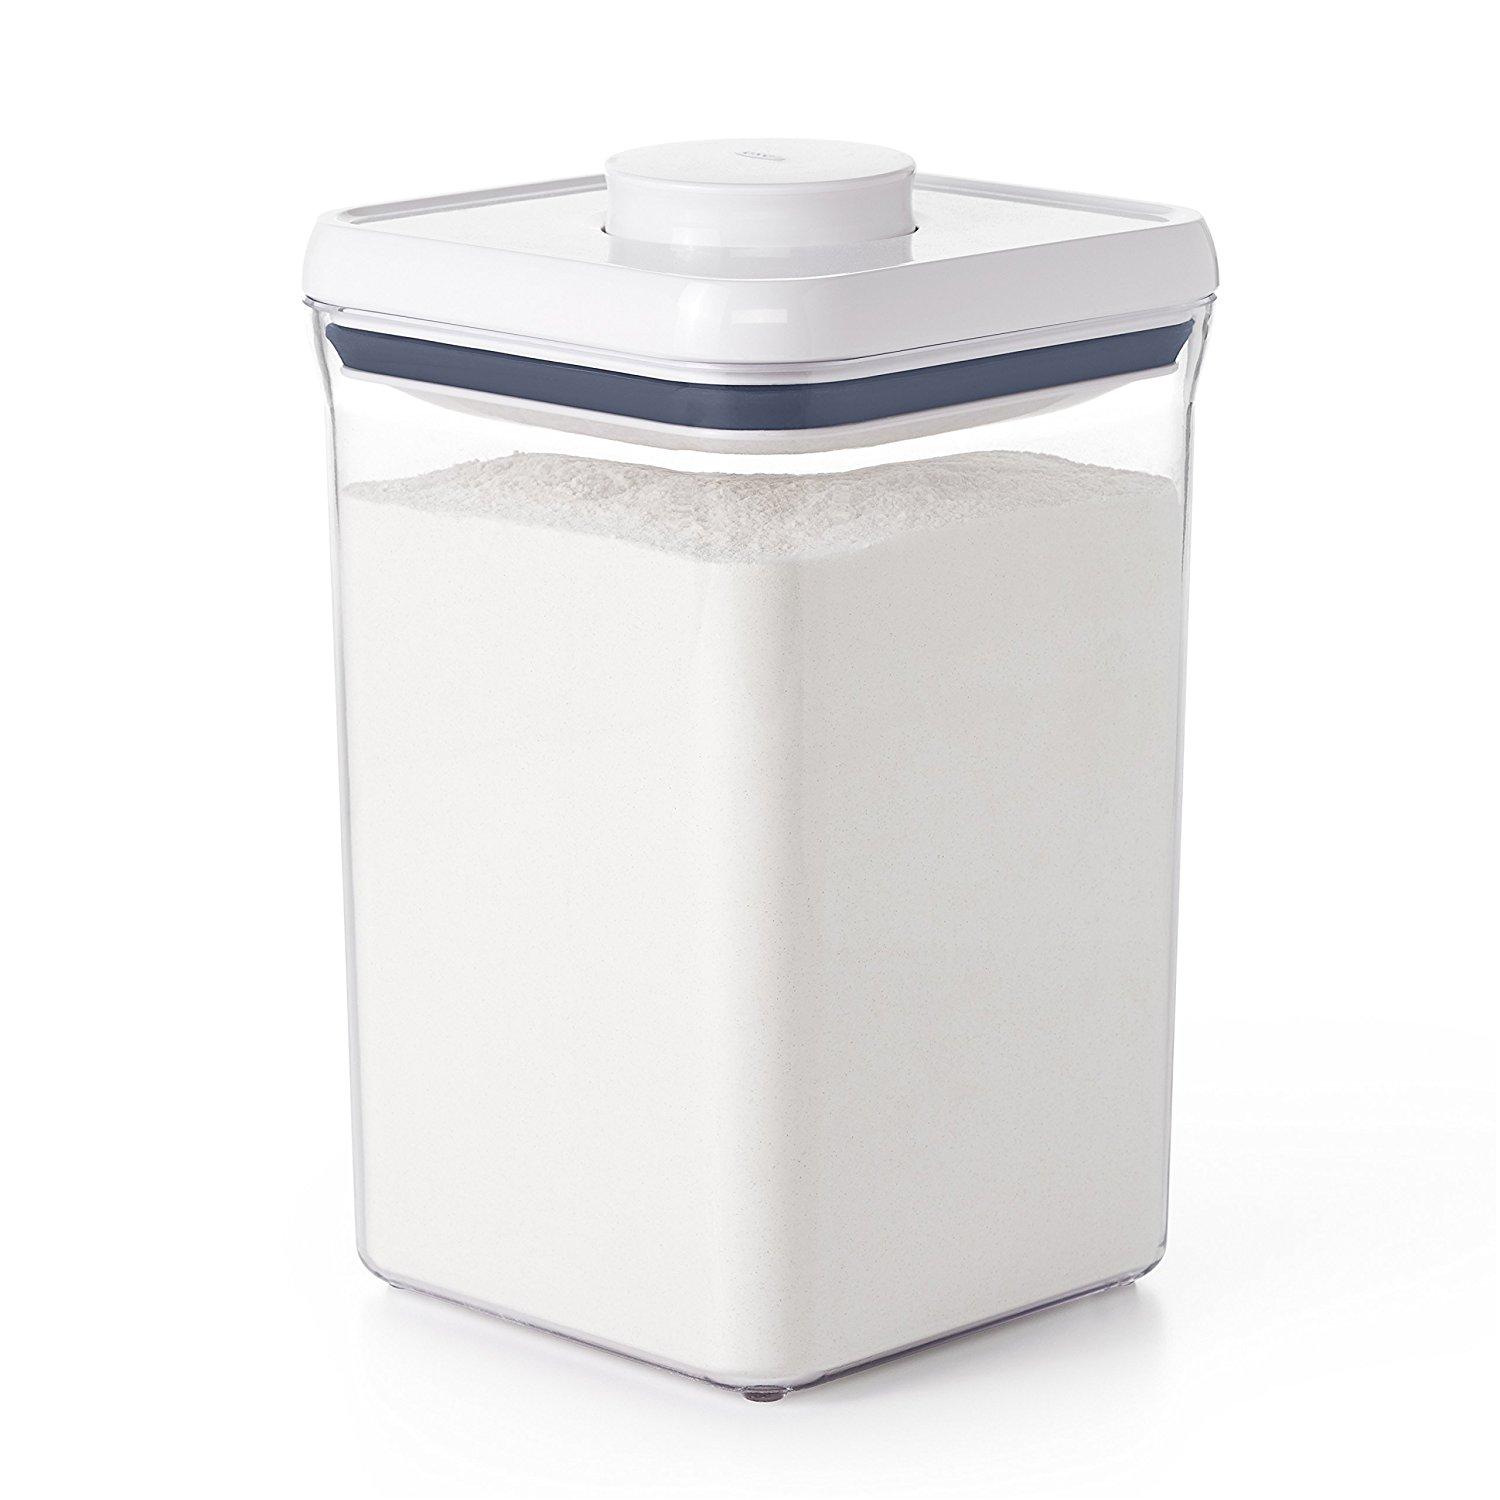 Today Only Get 2 Oxo Square Pop 4 Qt Airtight Food